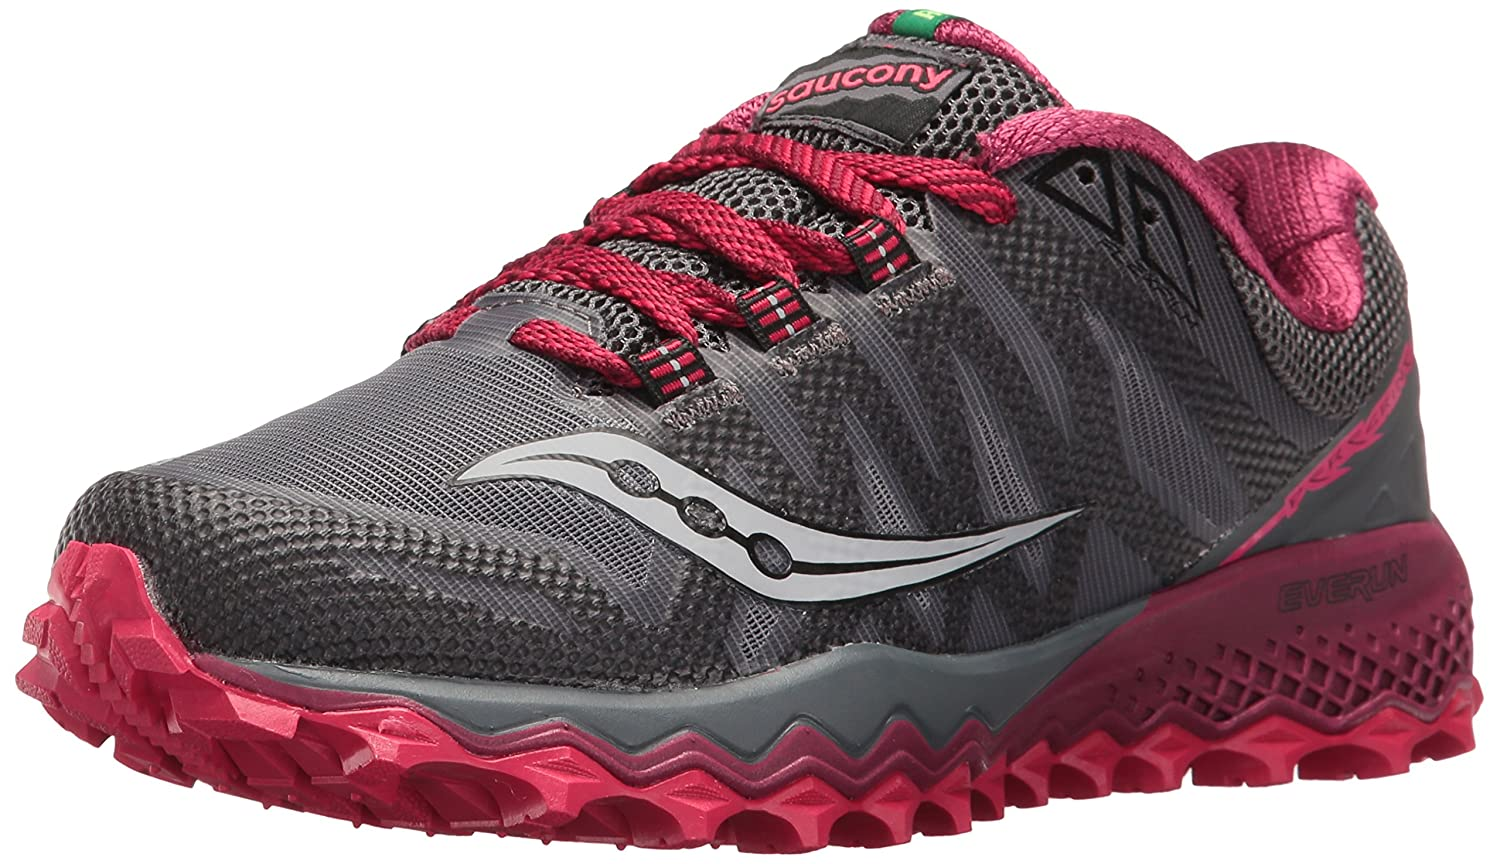 Saucony Women's Peregrine 7 Trail Running Shoe B01GJYDUX4 11 B(M) US|Grey Berry